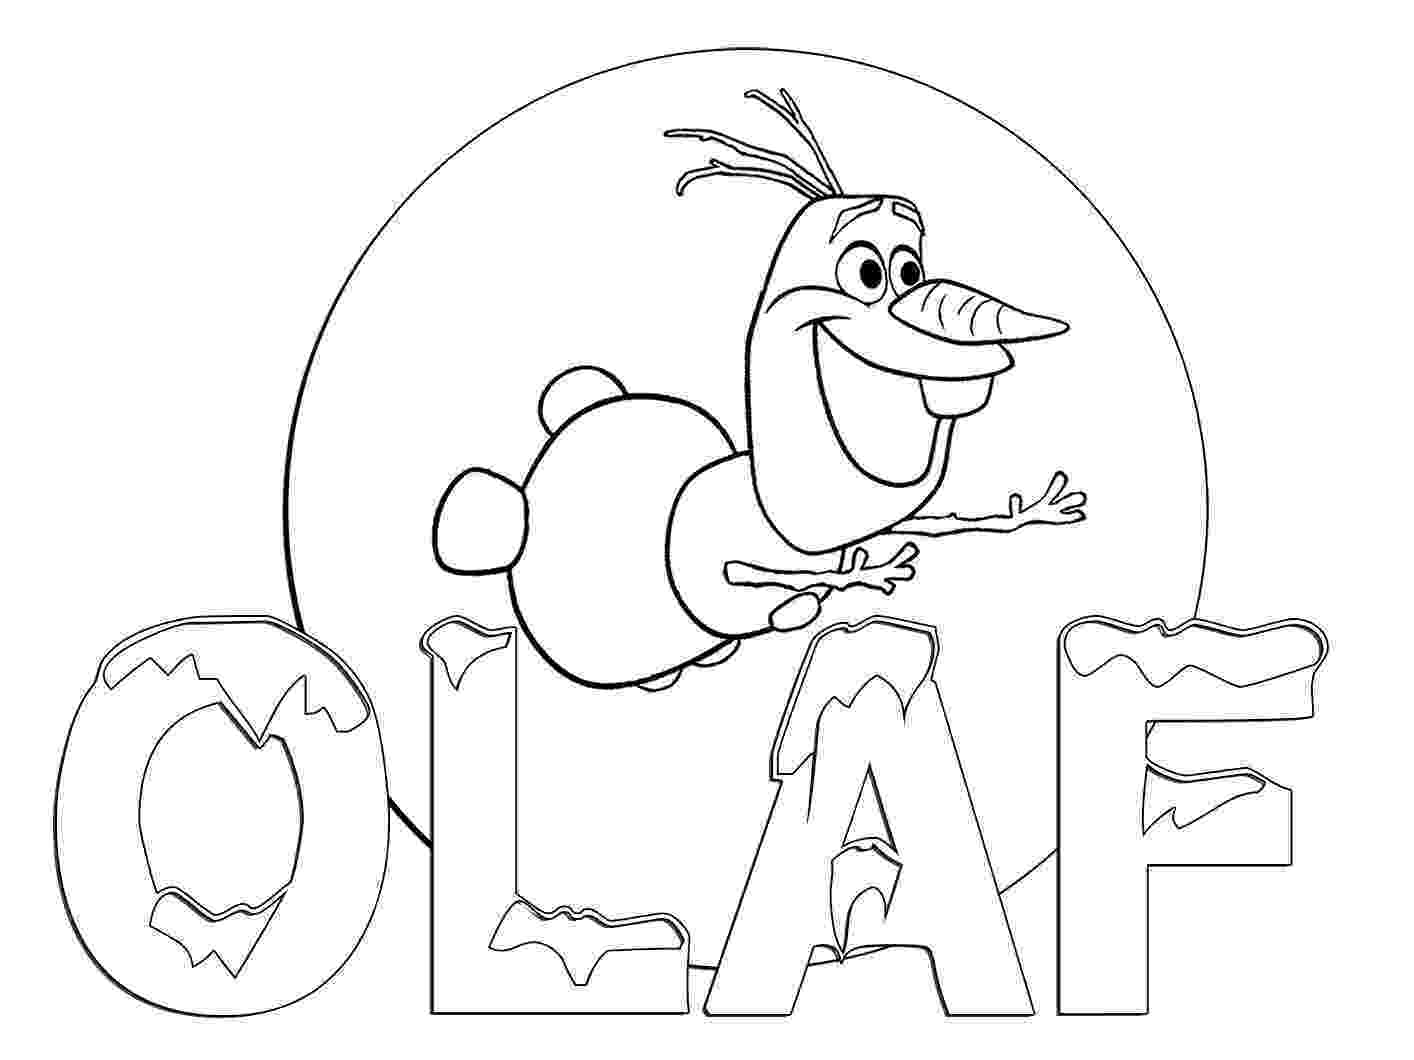 printable colouring pages frozen free printable frozen coloring pages for kids best pages colouring printable frozen